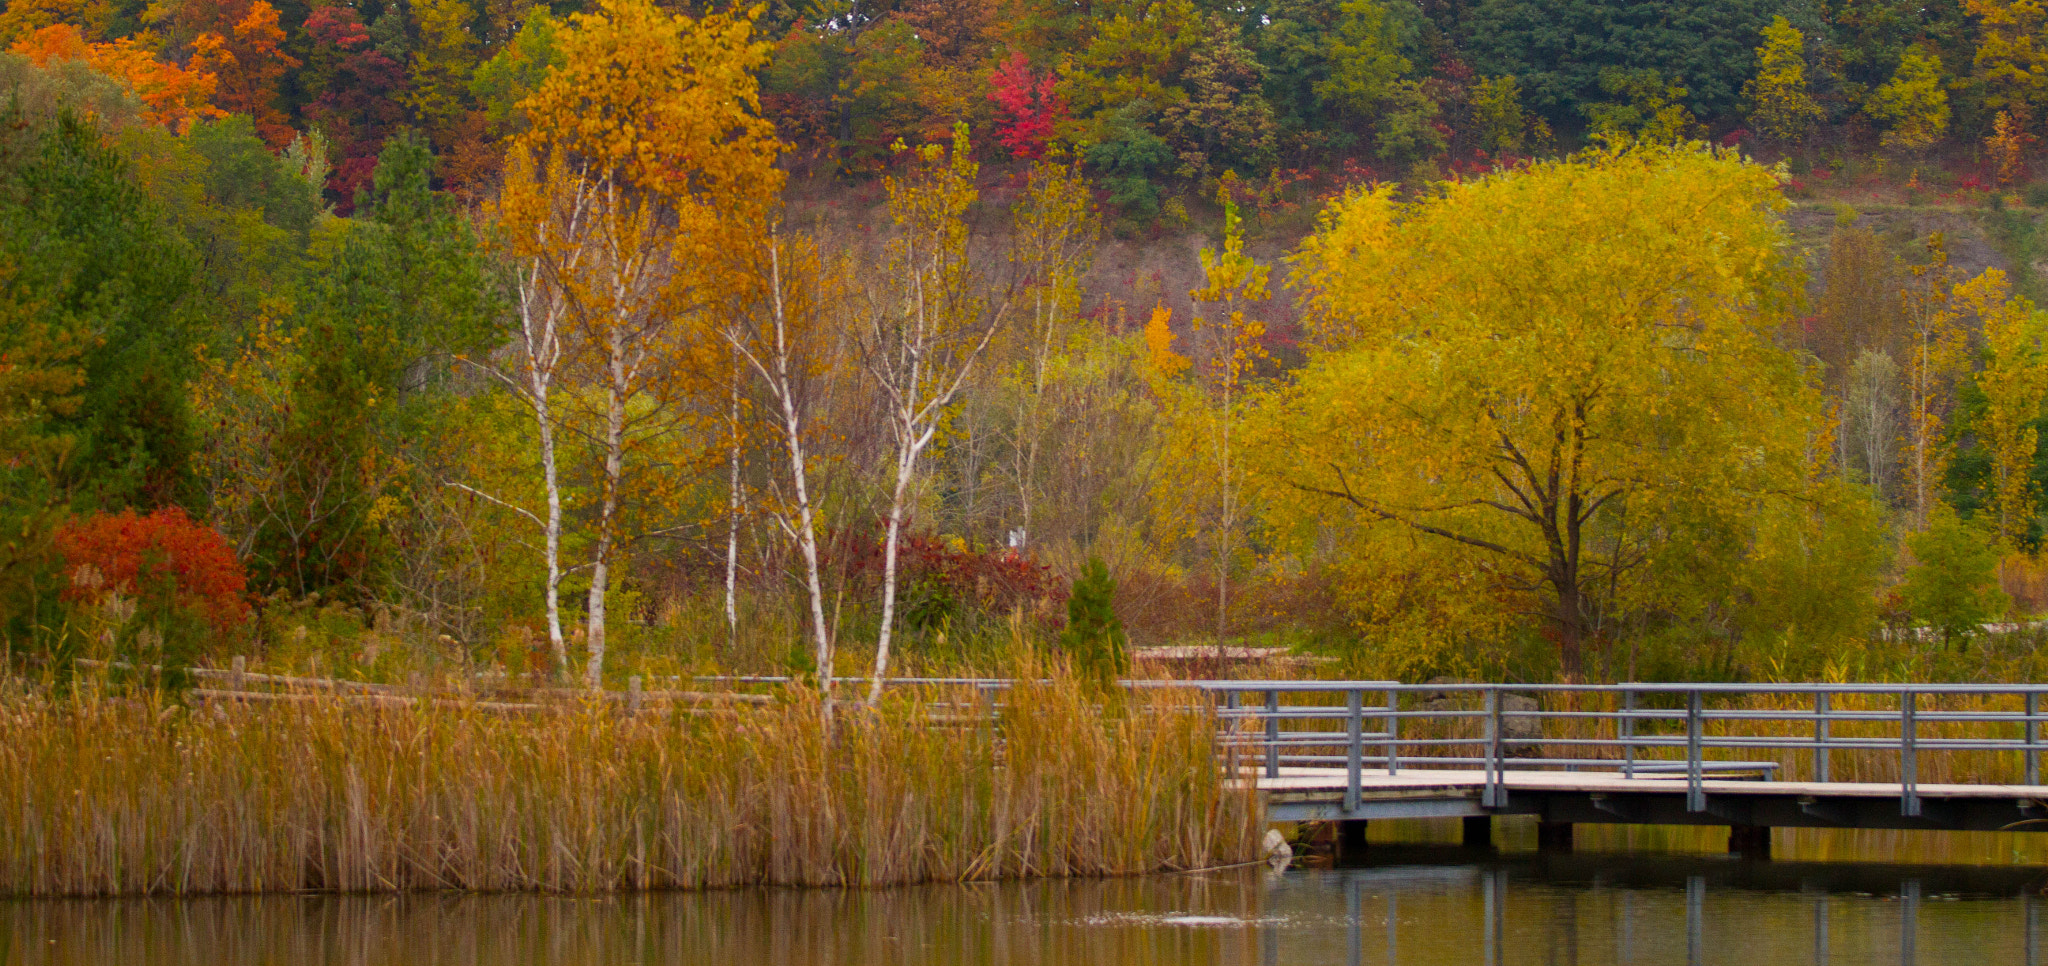 Photograph Brickworks Colours by Ash Furrow on 500px